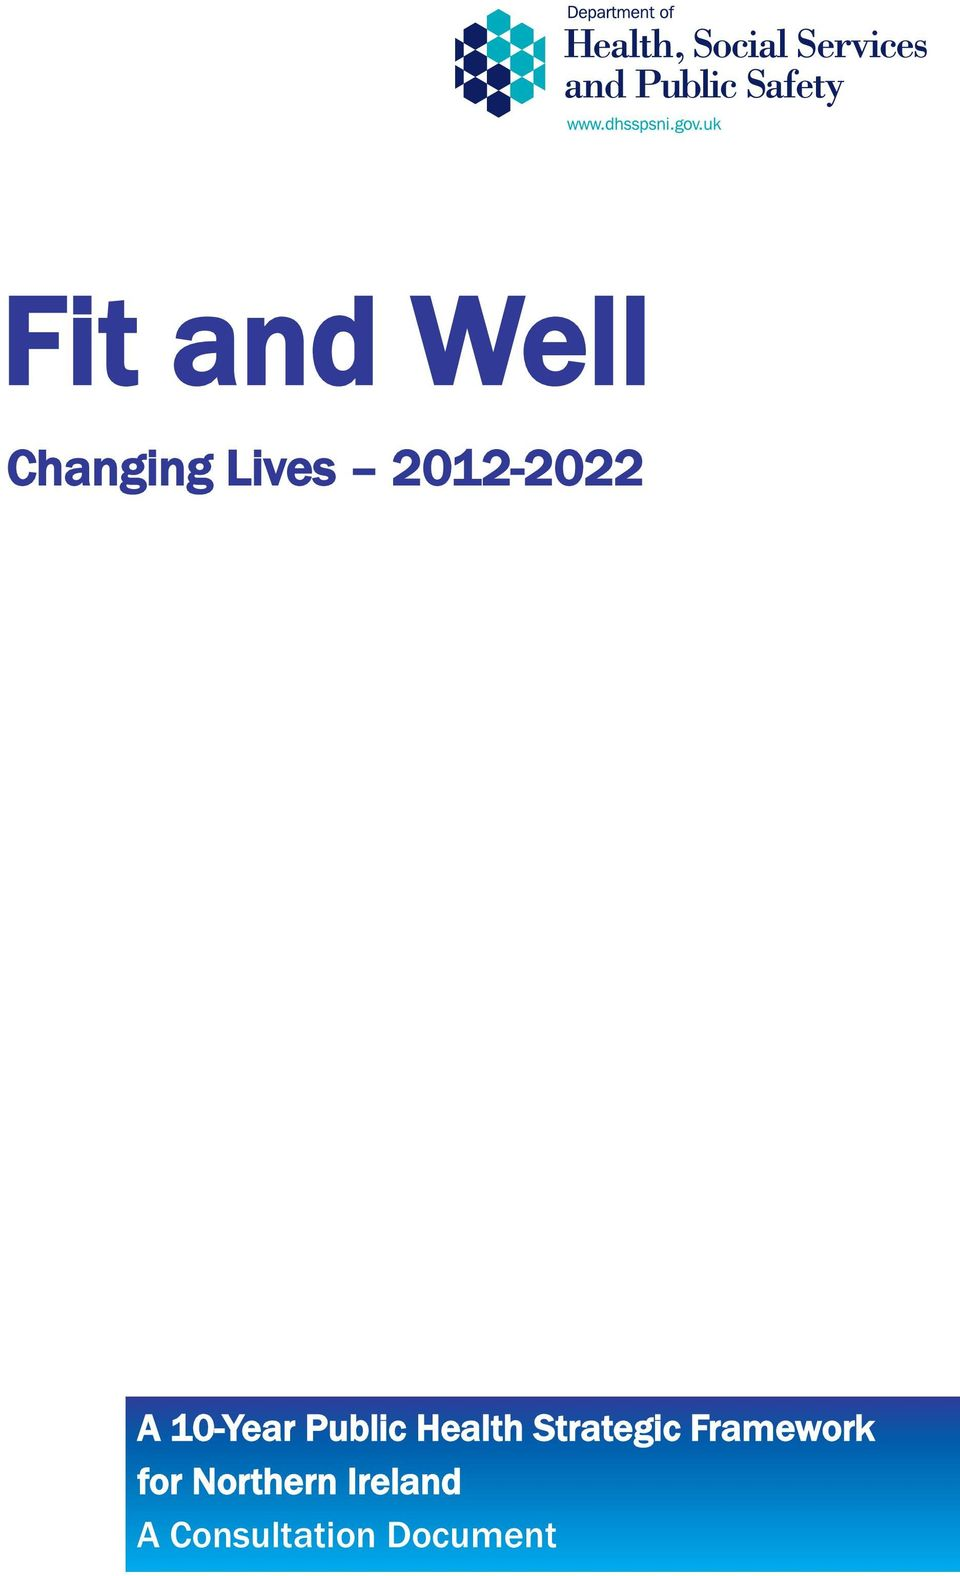 Health Strategic Framework for